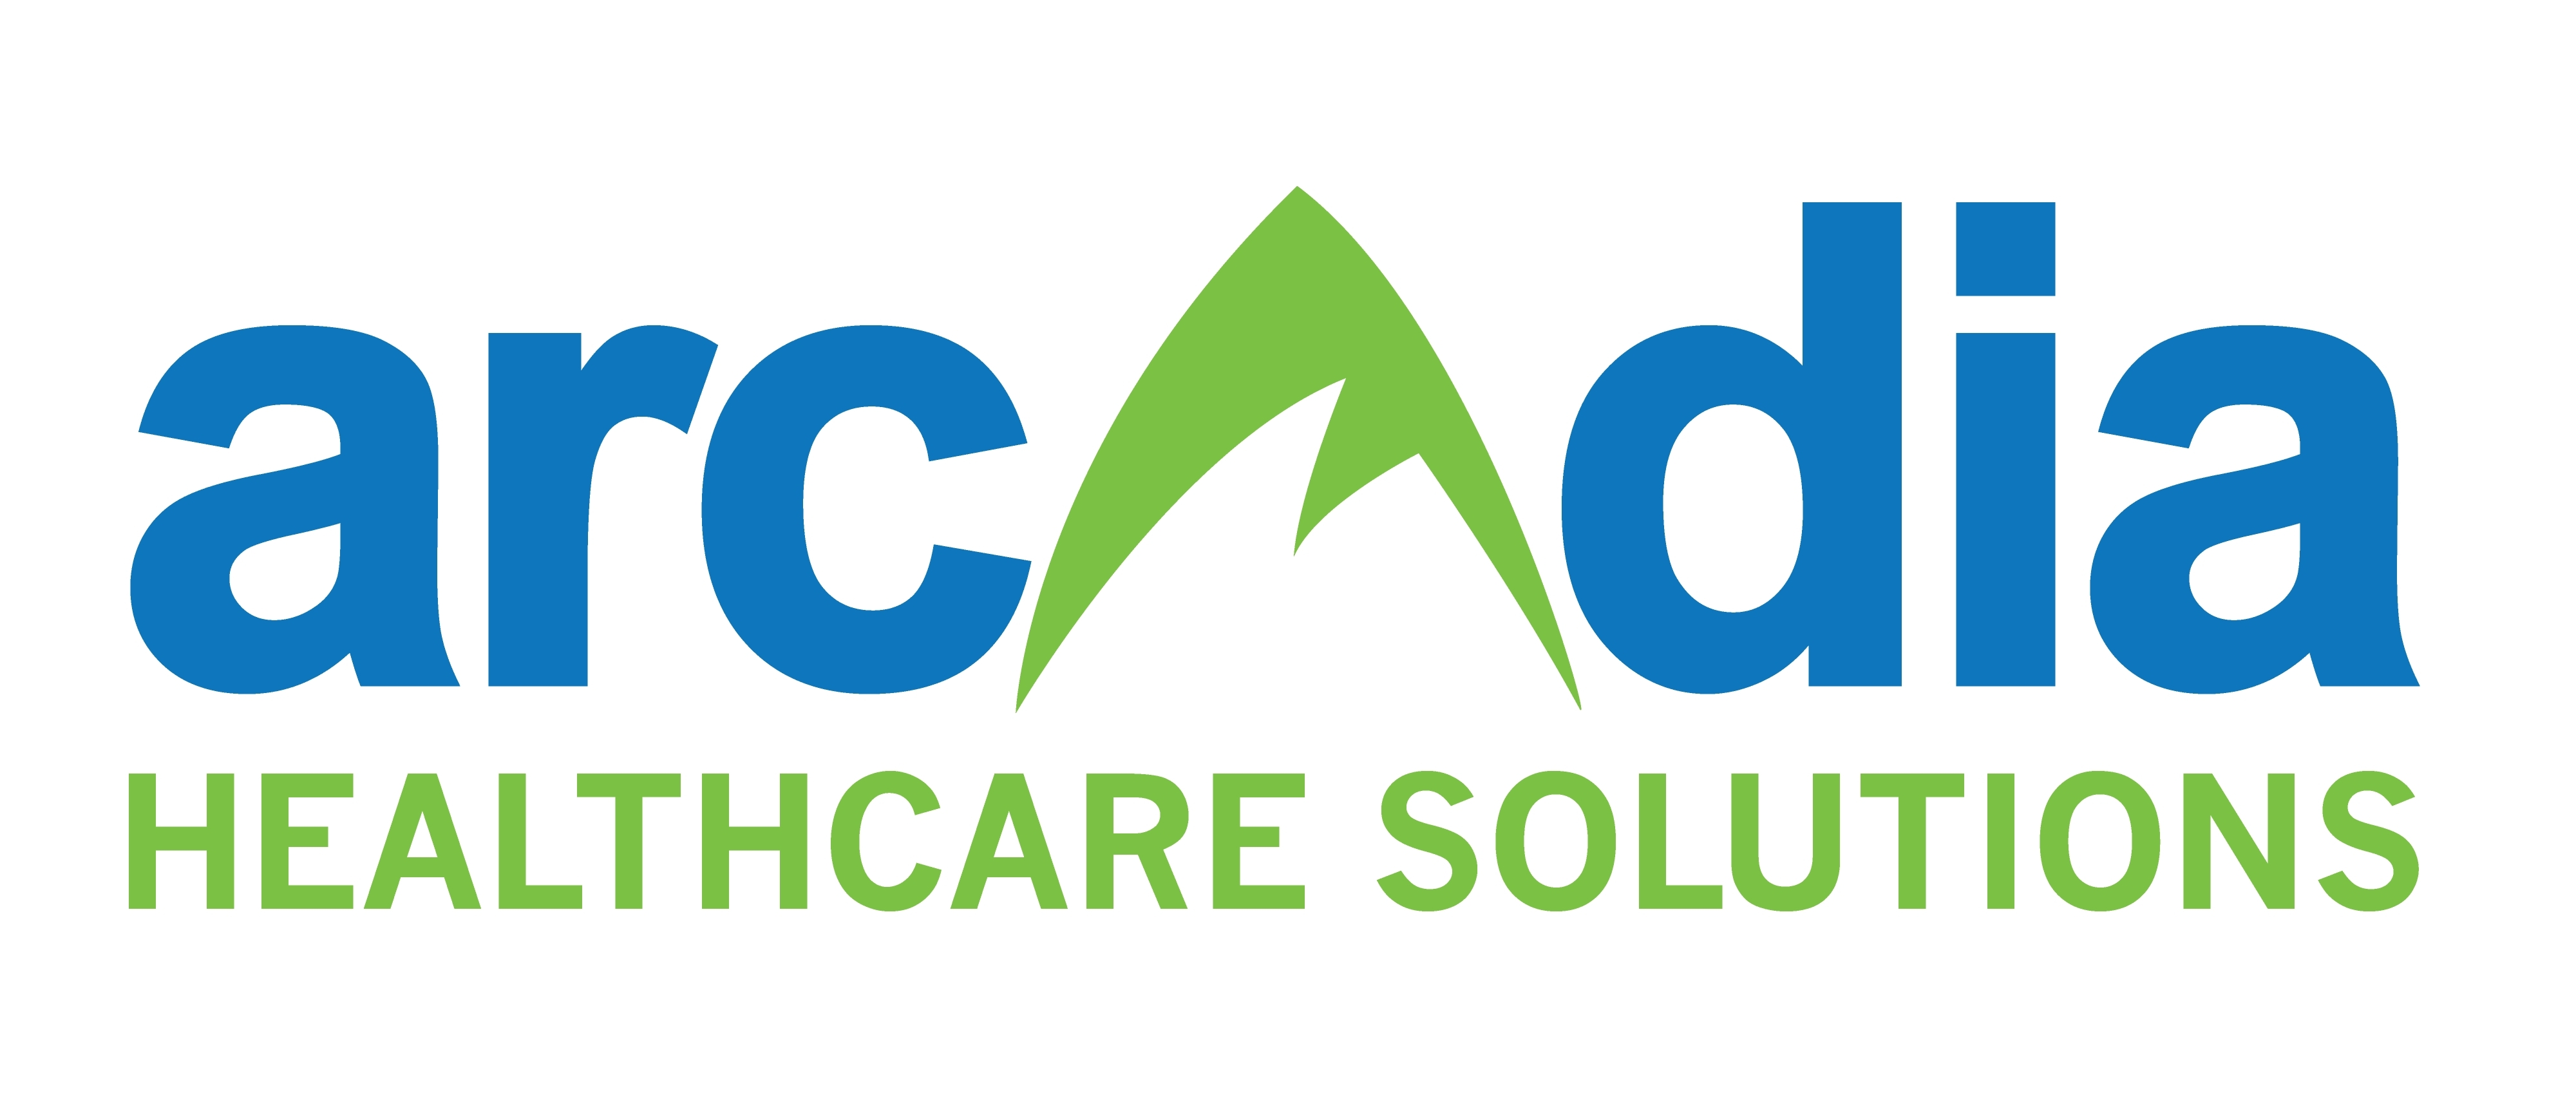 Theme: Next Generation Technologies for Creating Affordable Healthcare  Solutions